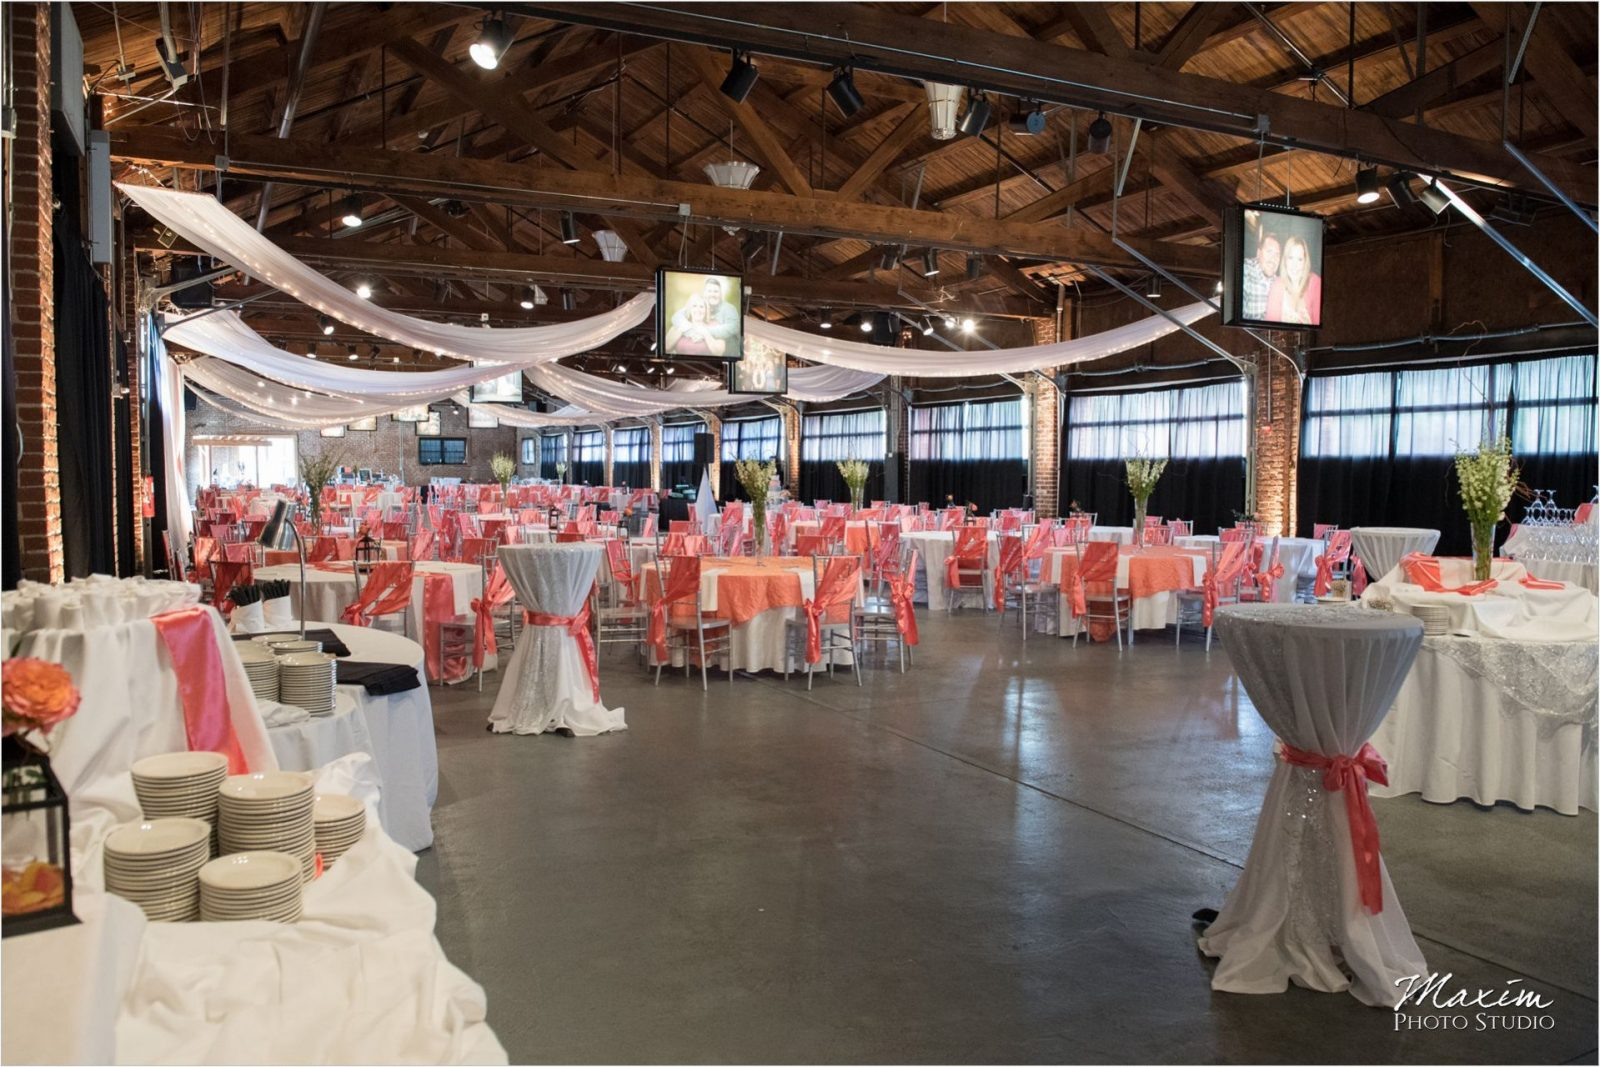 Top of the Market Dayton Ohio Wedding Reception